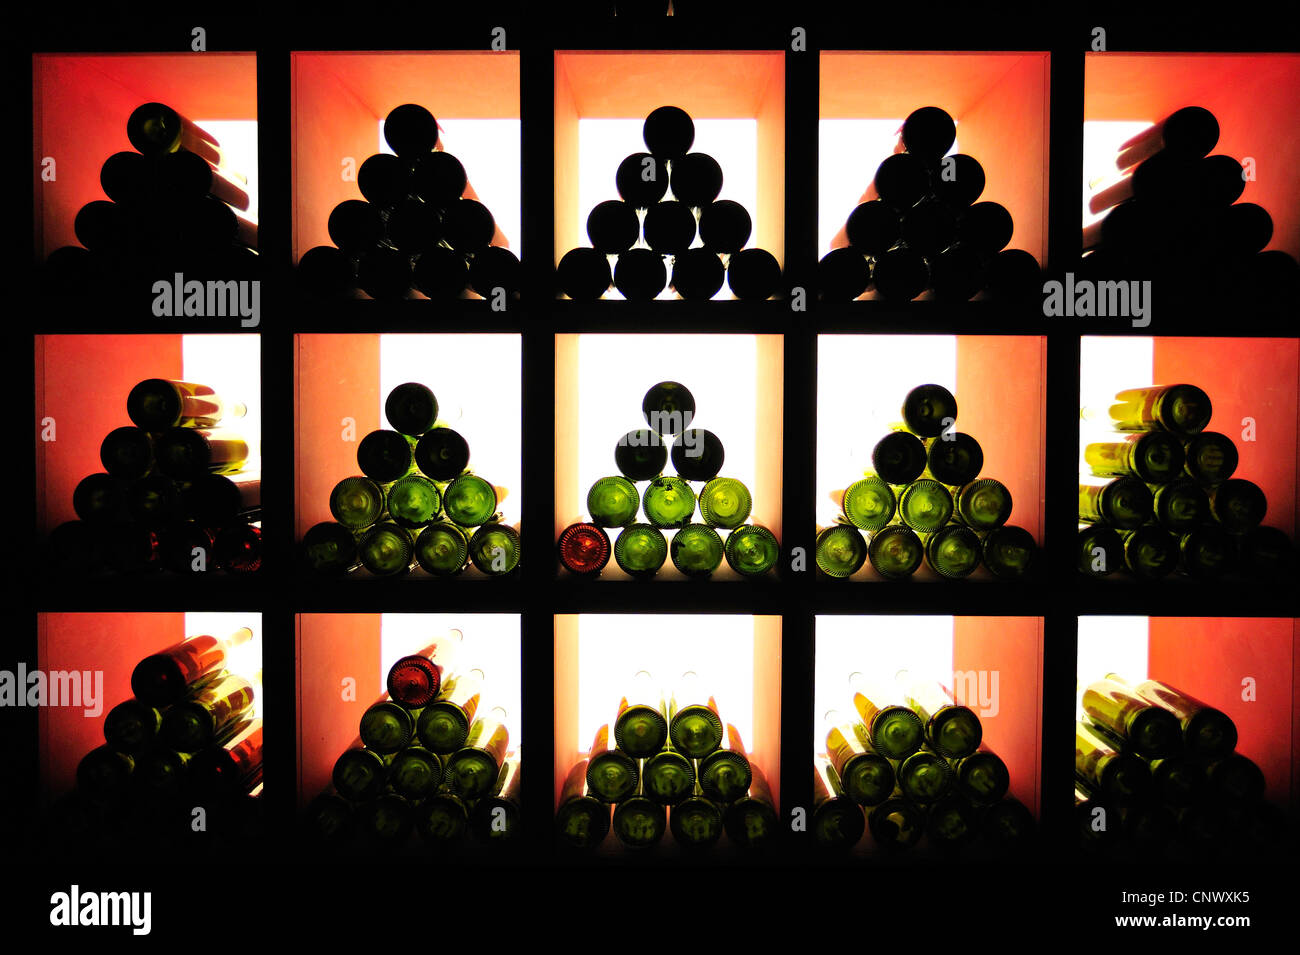 Museo del Vino, Barolo, Langhe, Province of Cuneo, Piedmont, Italy - Stock Image